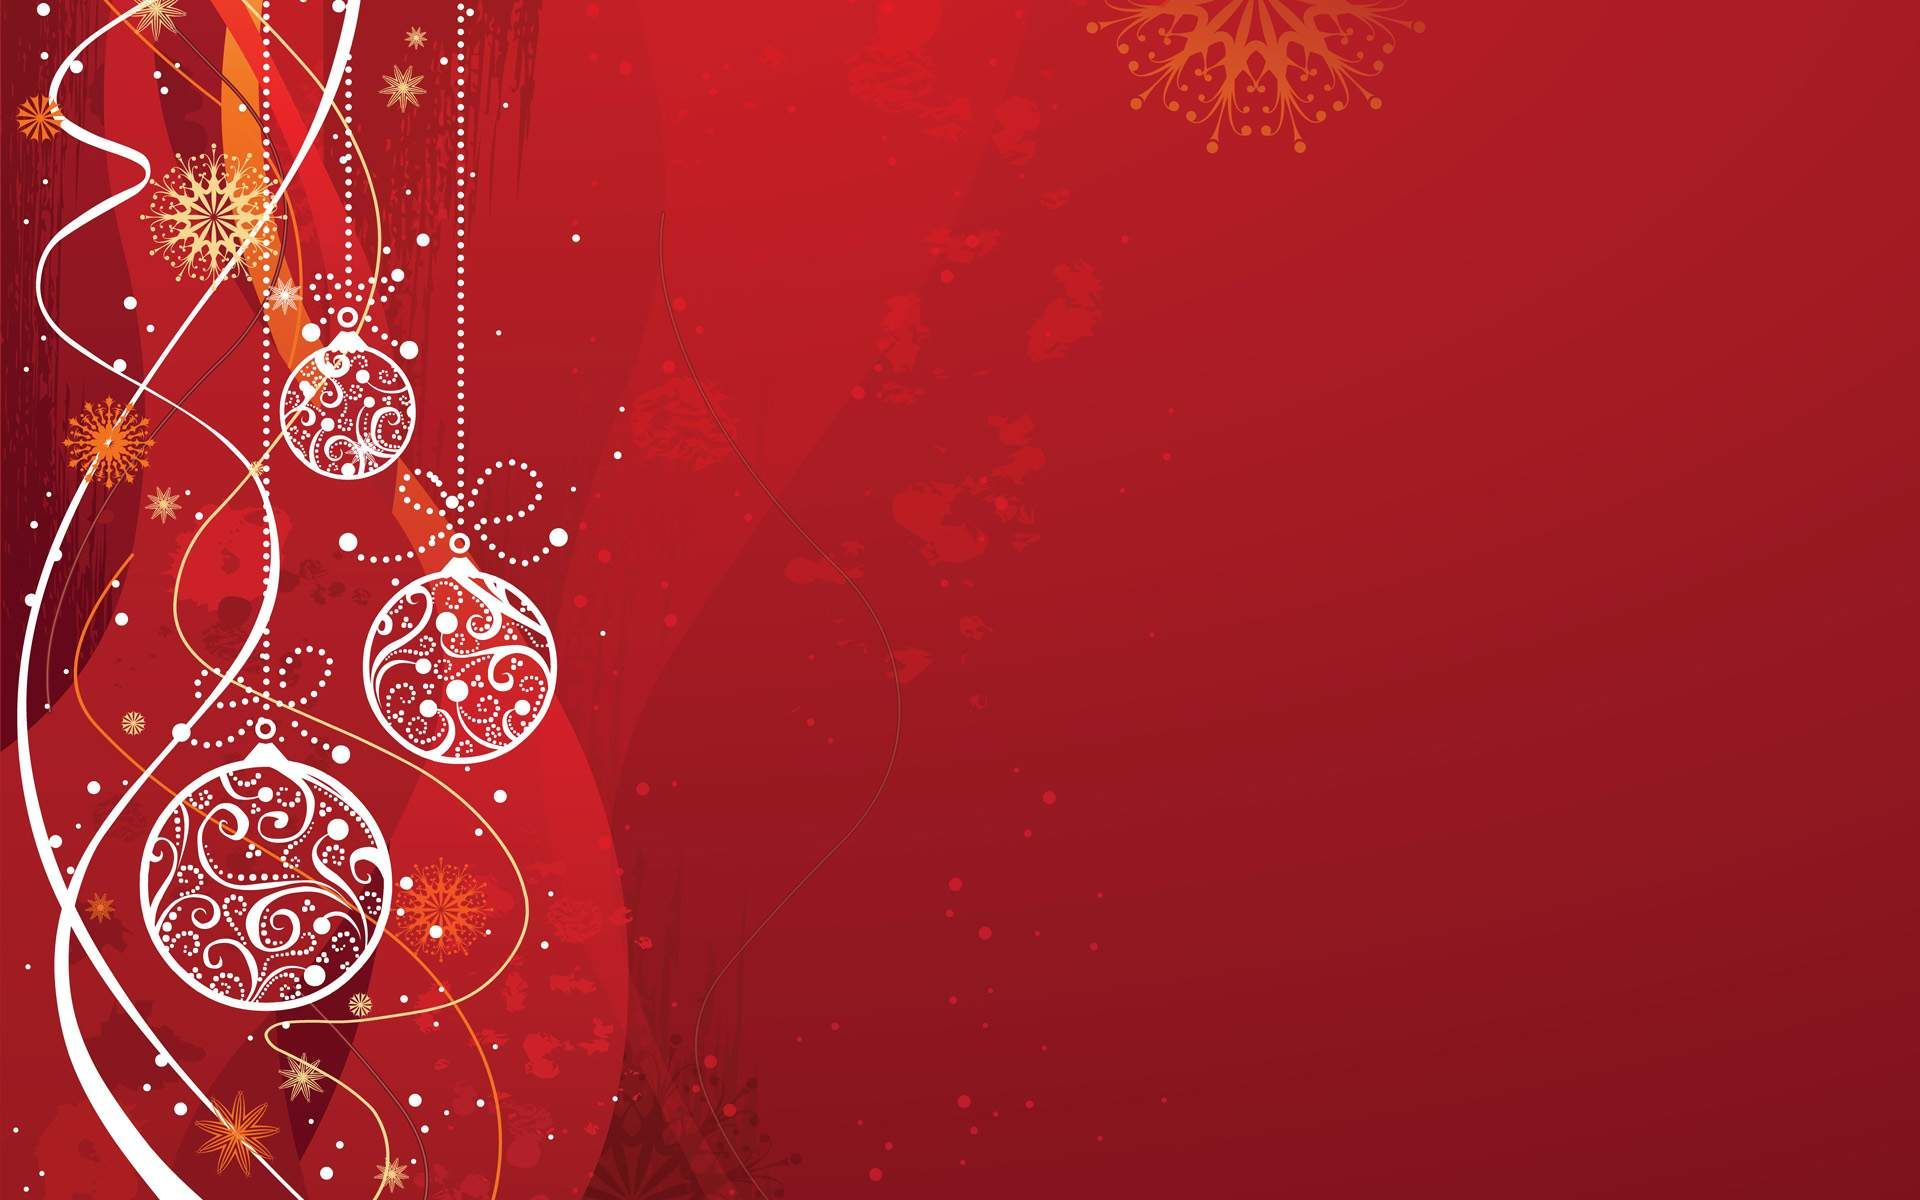 Xmas background images - Free Christmas Background Clipart Christmas Wallpapers For Vista Wallpaper Desktop Backgrounds